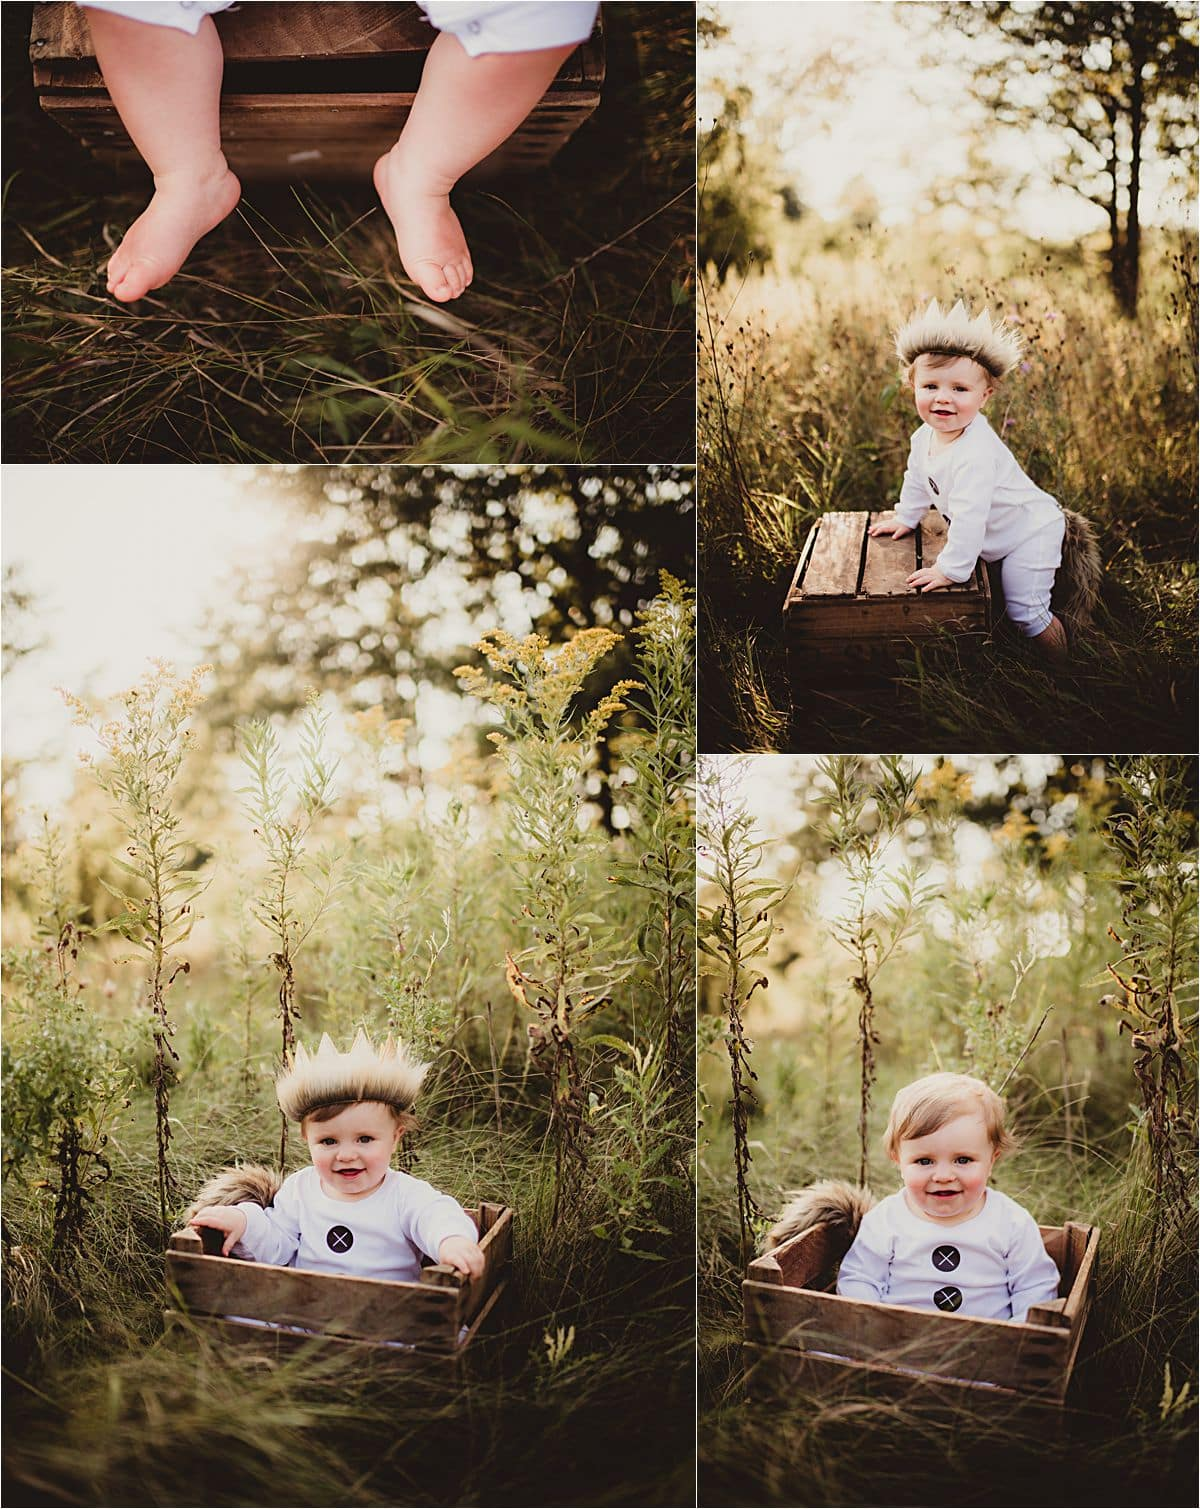 Where the Wild Things Are Little Boy Max Suit